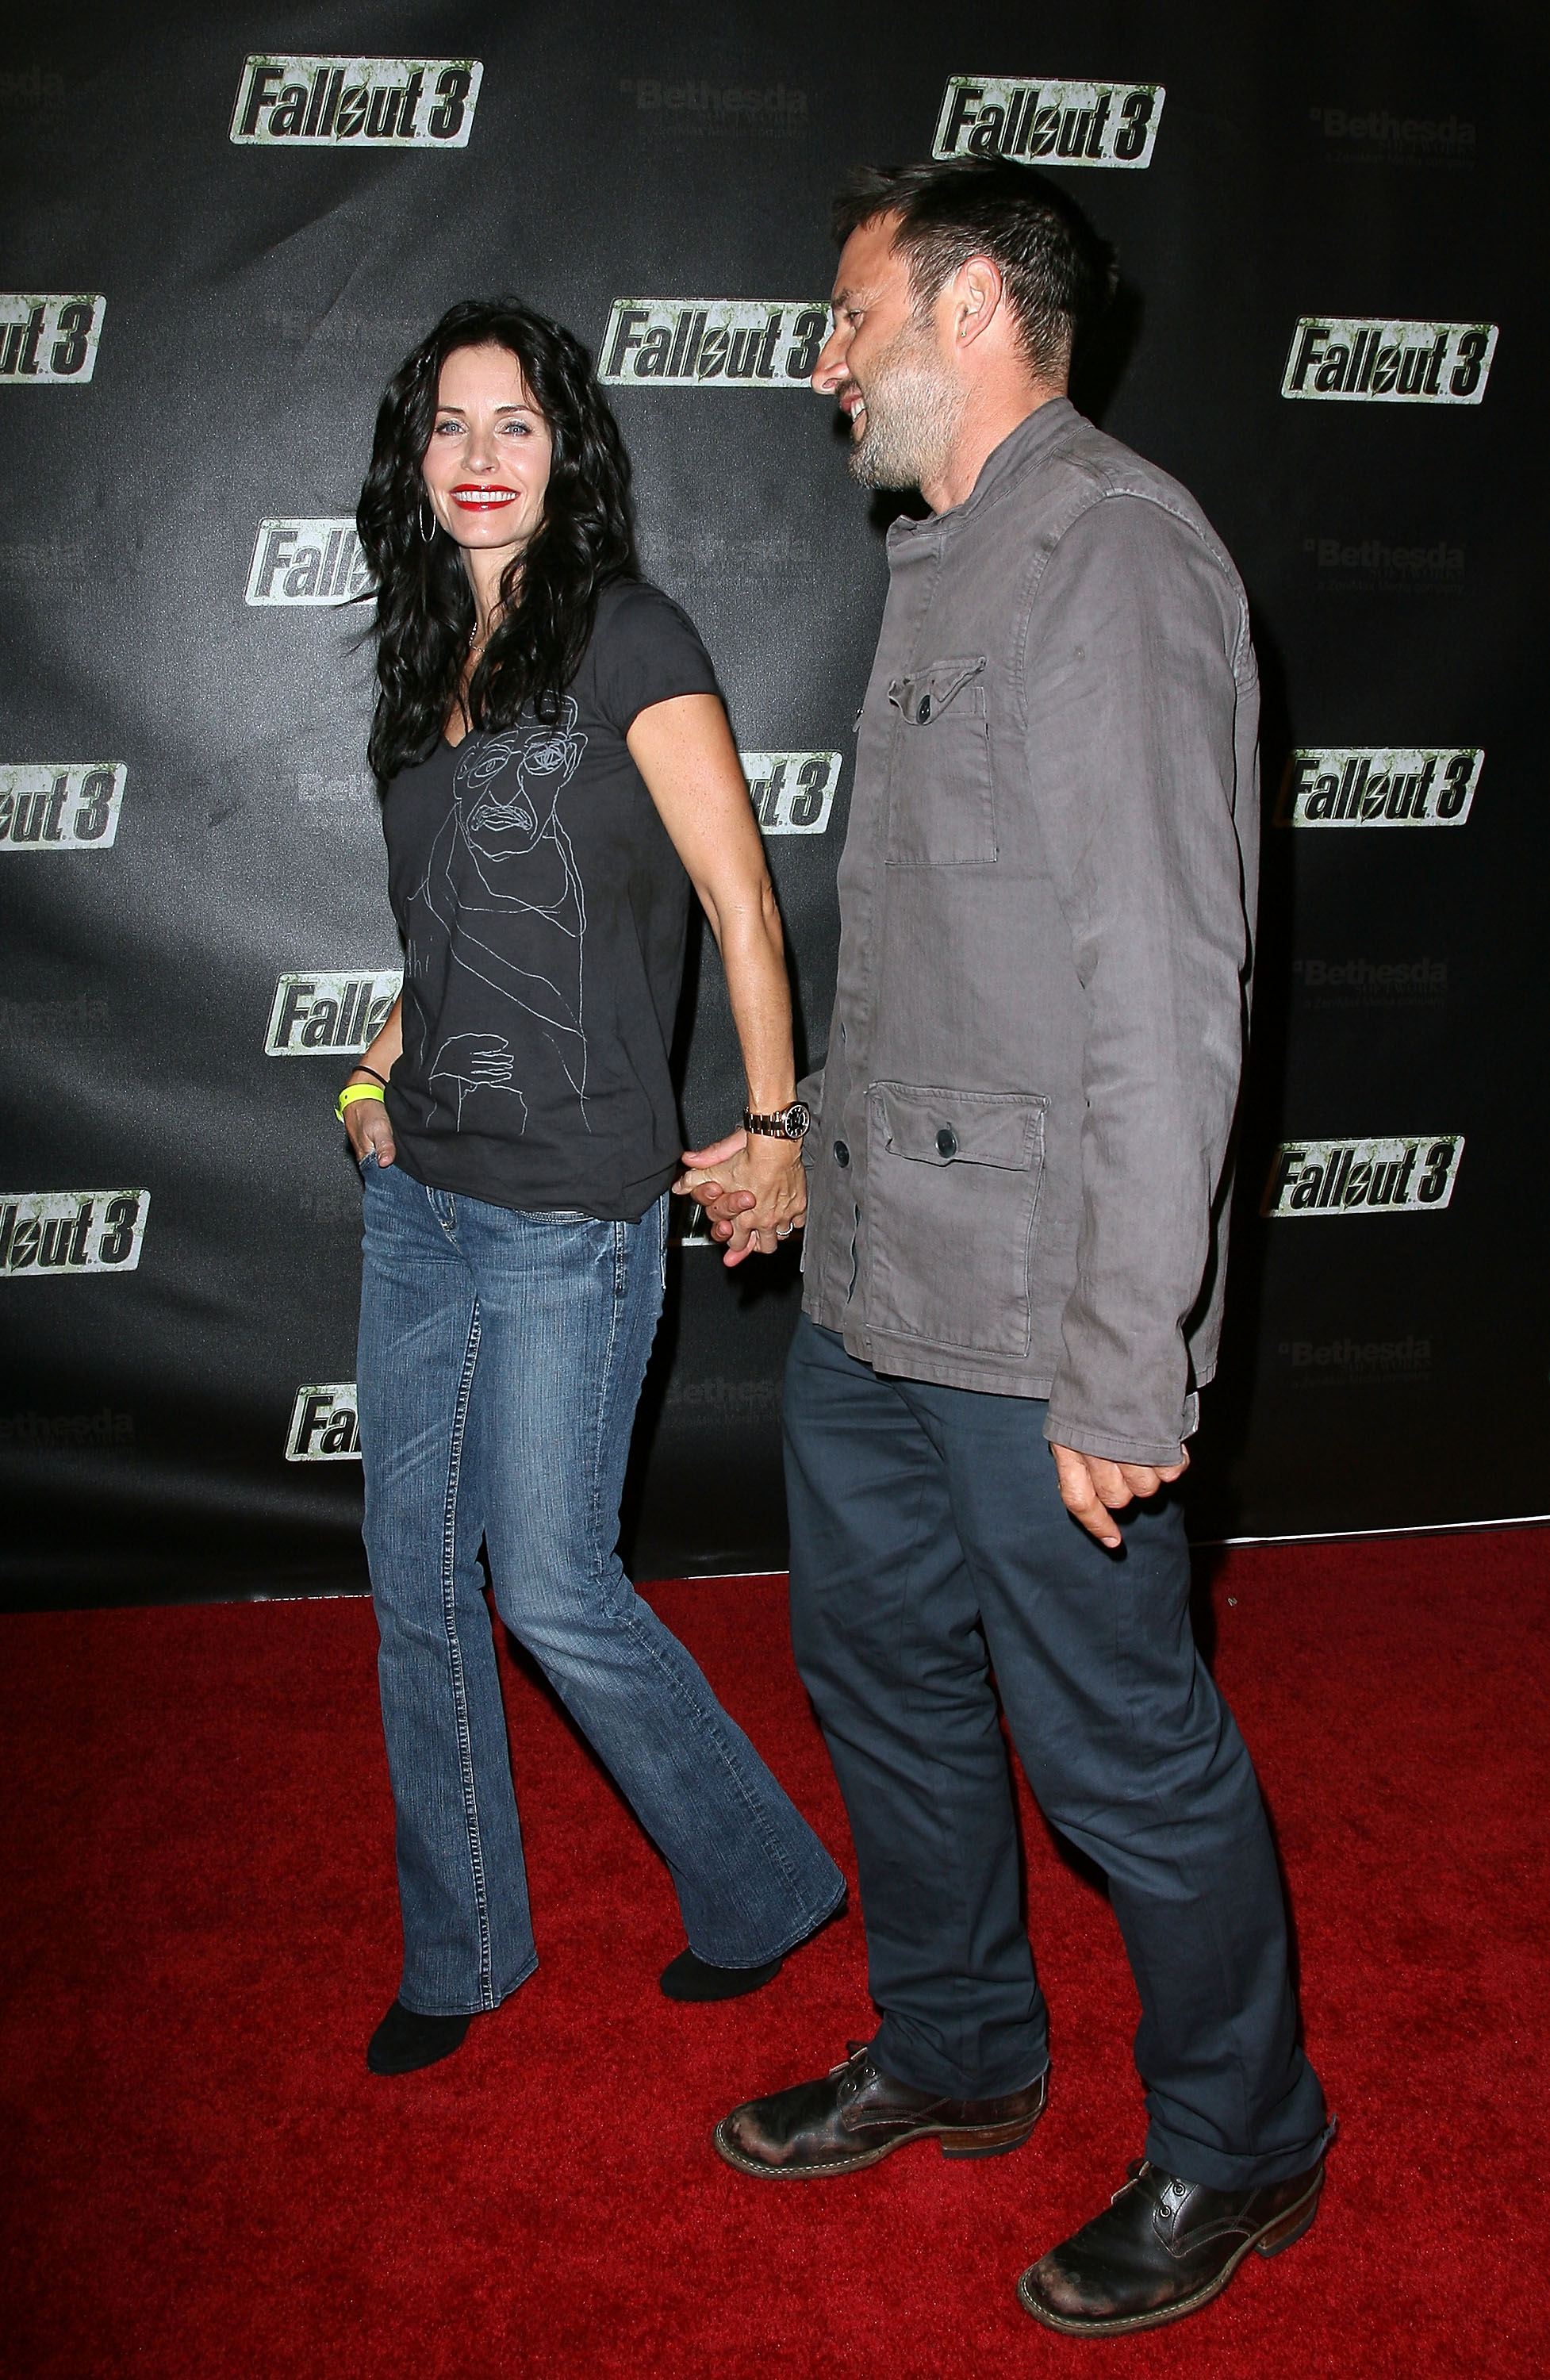 55039_Celebutopia-Courteney_Cox-Launch_Party_for_Fallout_3_videogame-08_122_563lo.jpg